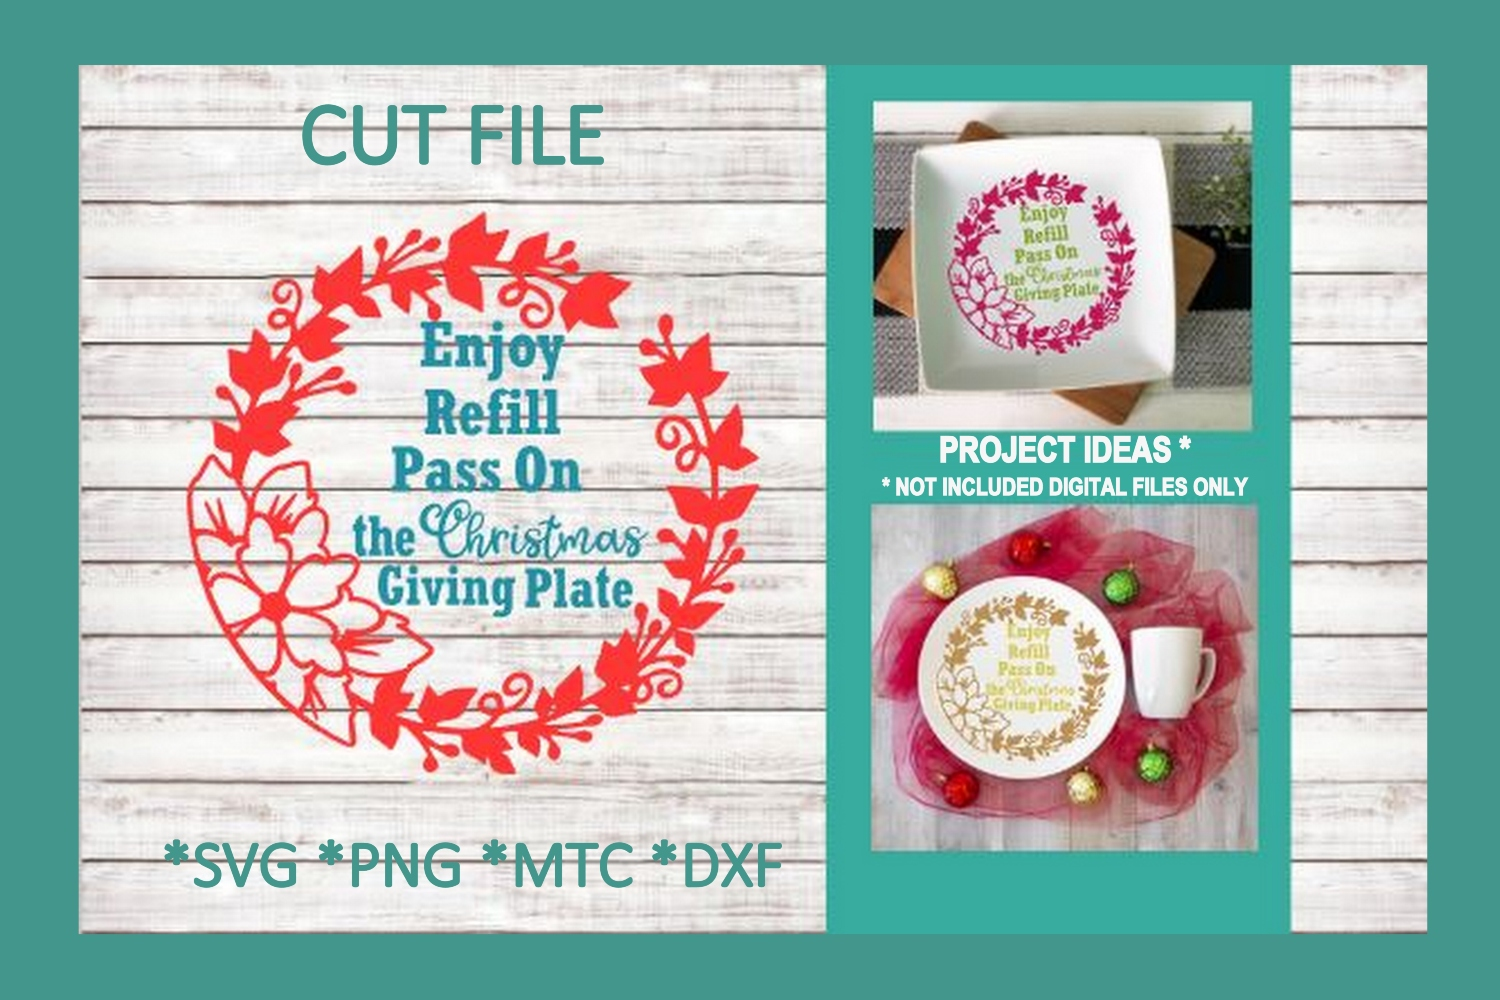 SVG Cut File Christmas Giving Plate BUNDLE Set 01 example image 5